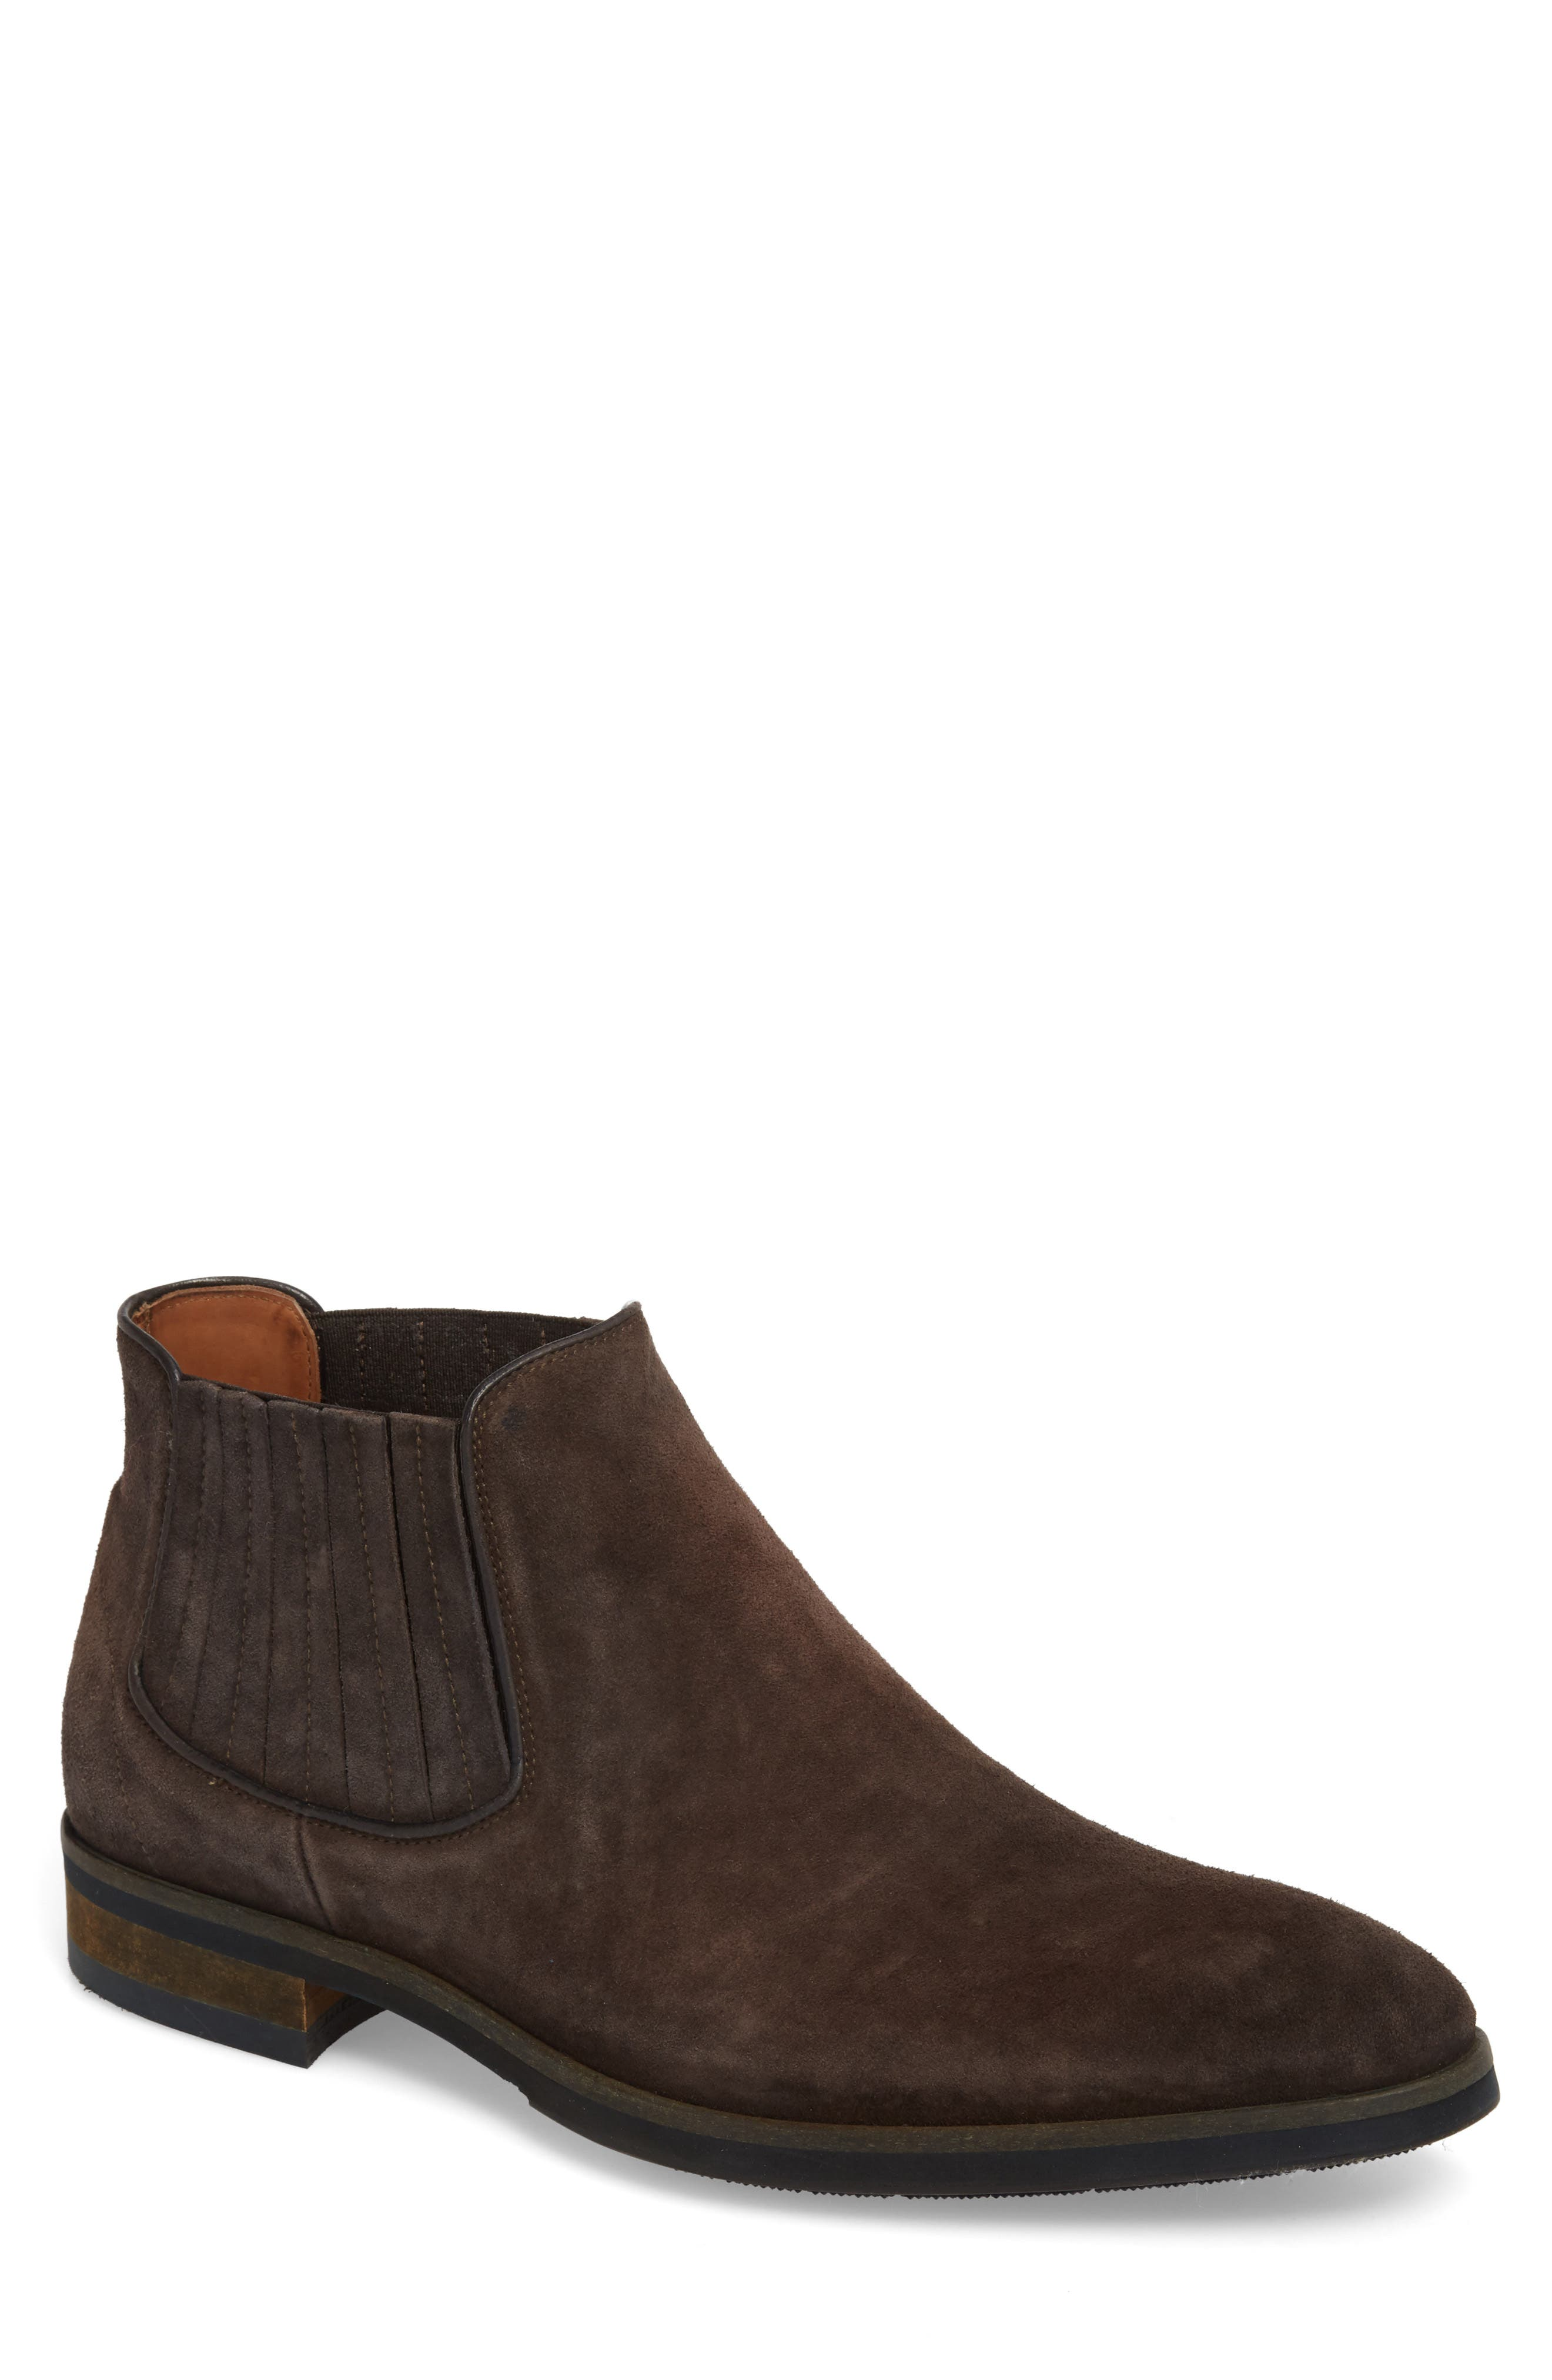 Gus Mid Top Chelsea Boot,                         Main,                         color, Coffee Oily Suede